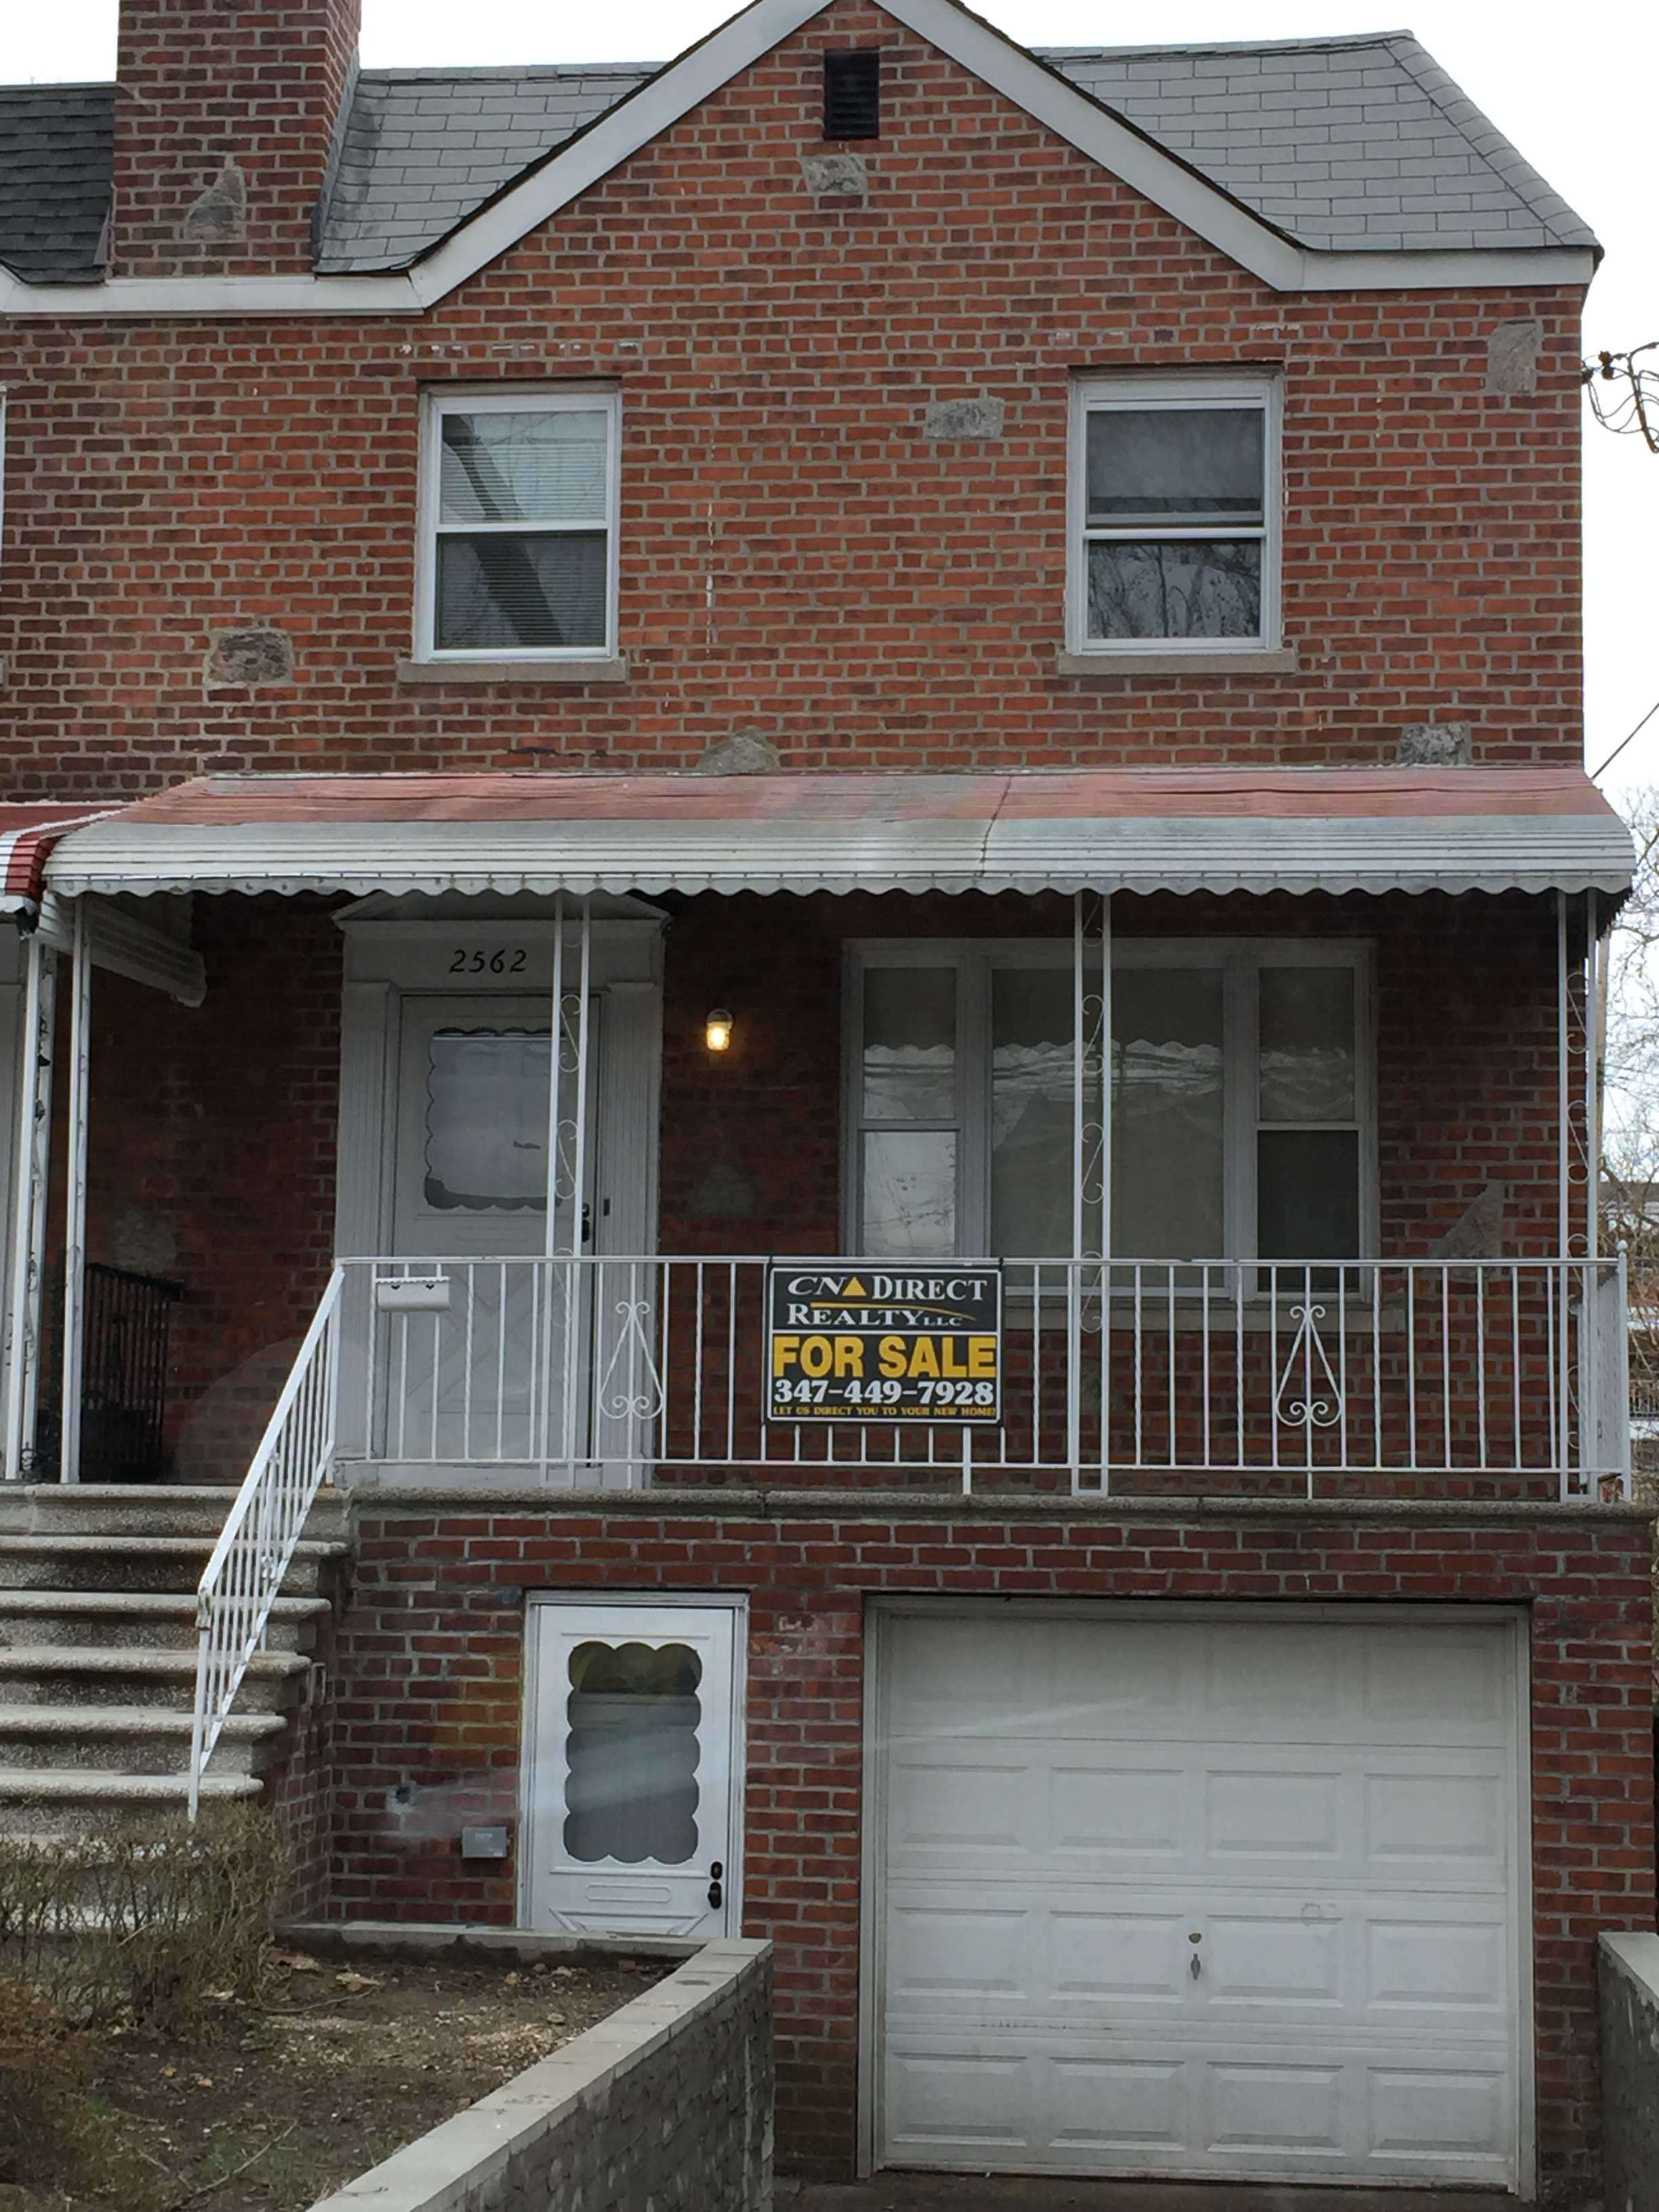 2562 Fish Ave Pelham Gardens Ny 10469 Cn Direct Realty